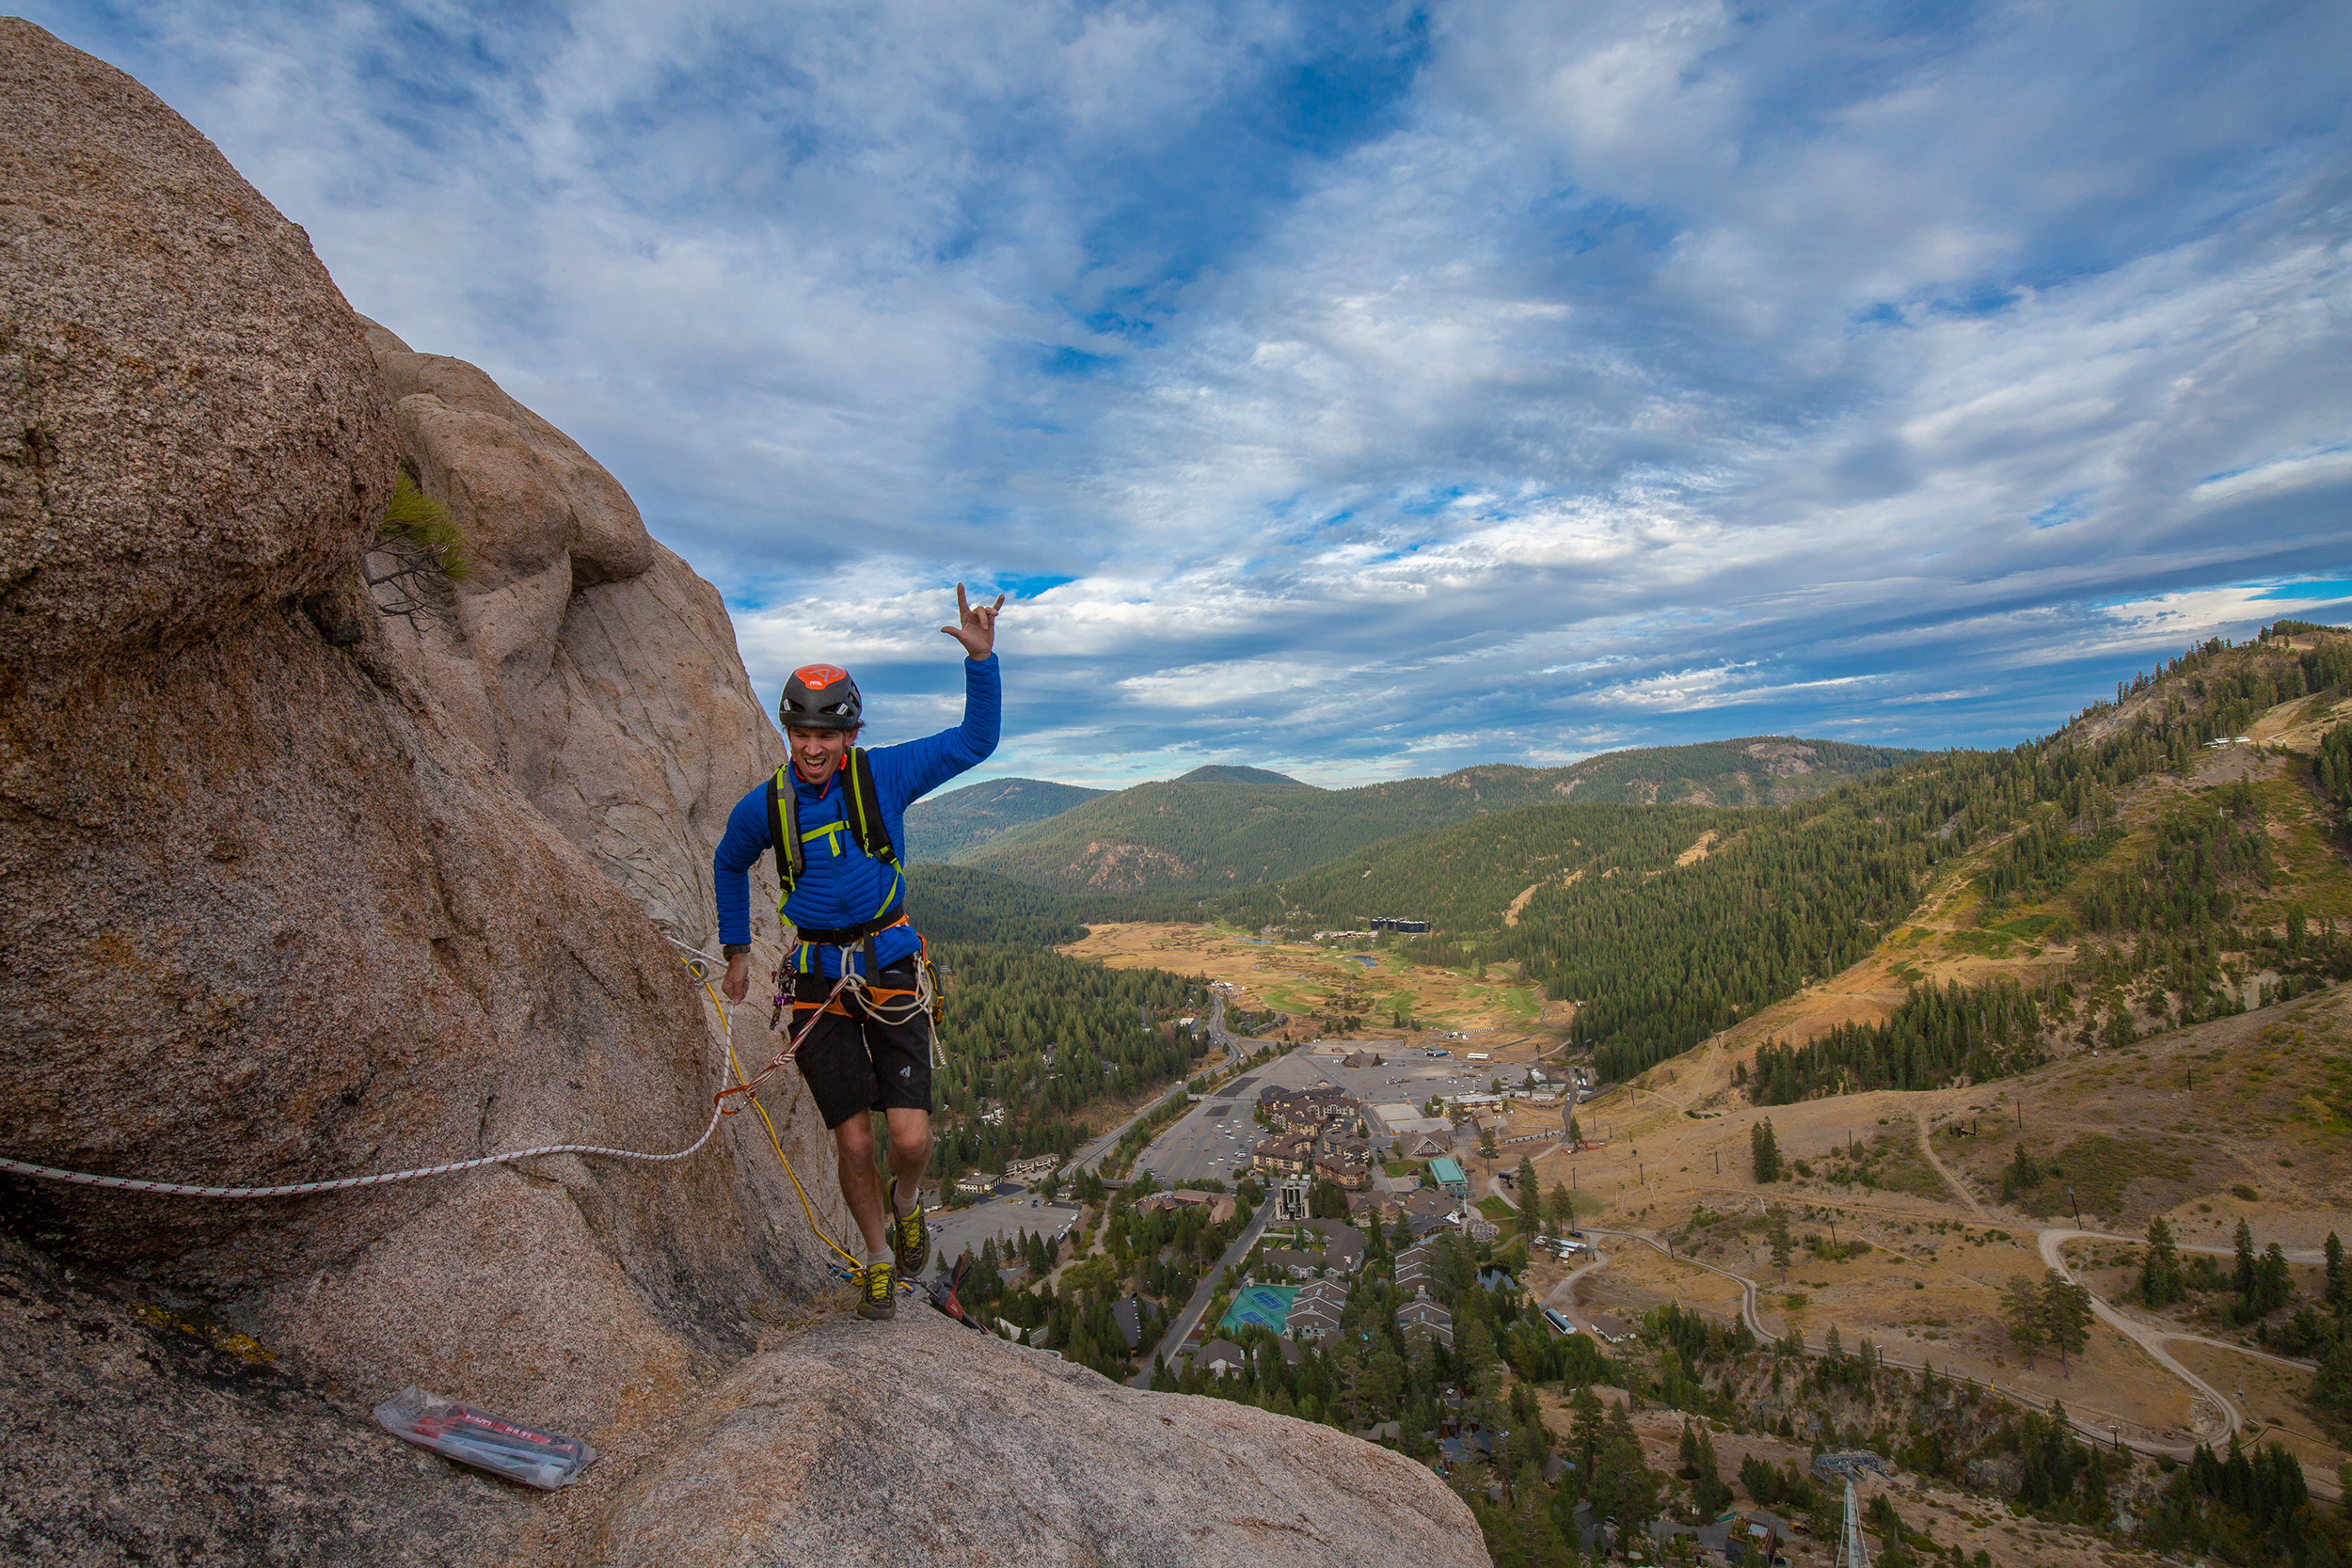 Adrian Ballinger climbing the Tahoe Via Ferrata with views of Squaw Valley